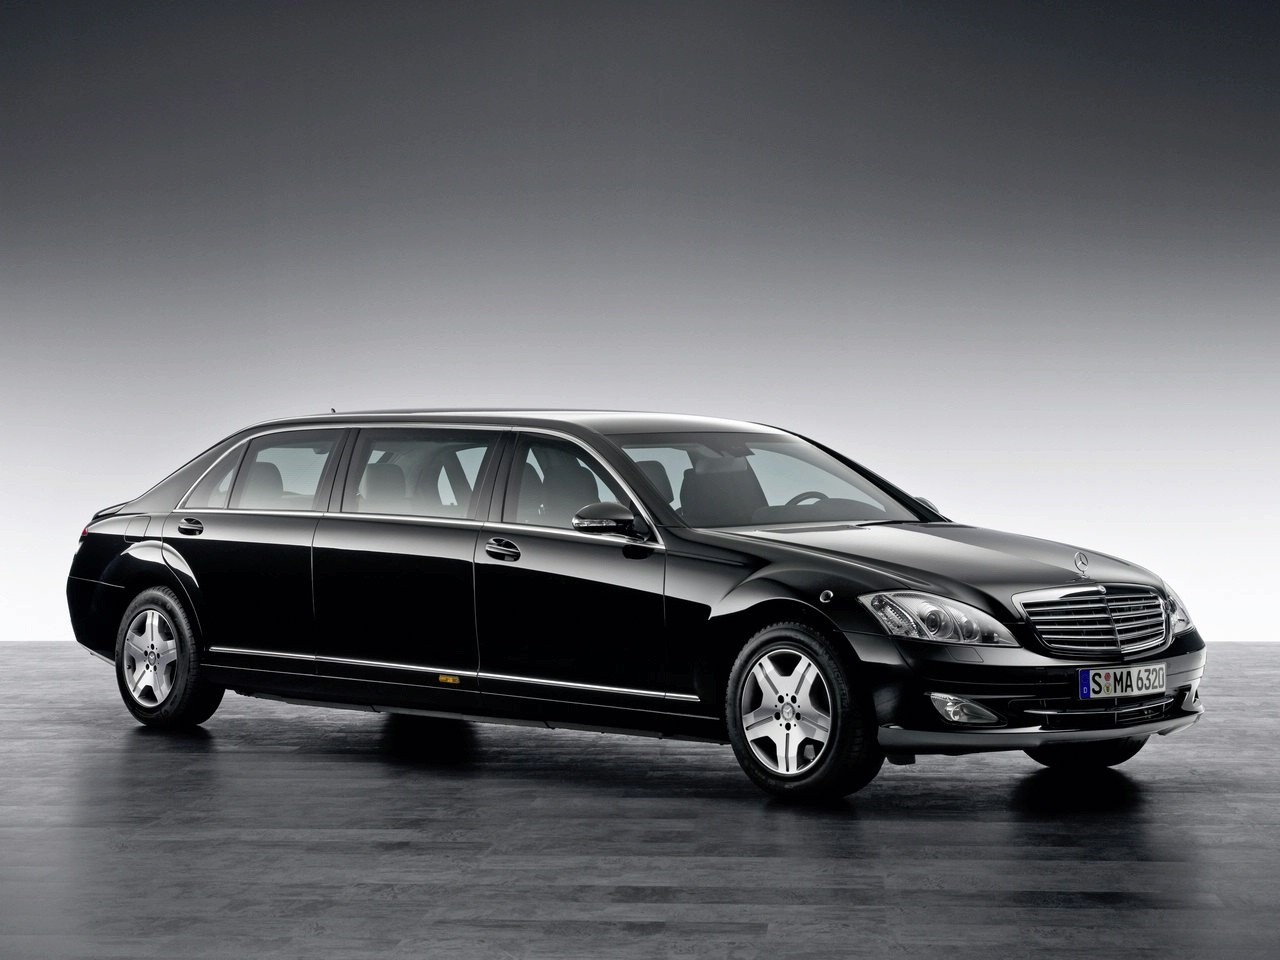 Best Used Minivan >> Mercedes-Benz S600 Guard Pullman Limousine Photo Gallery - Autoblog